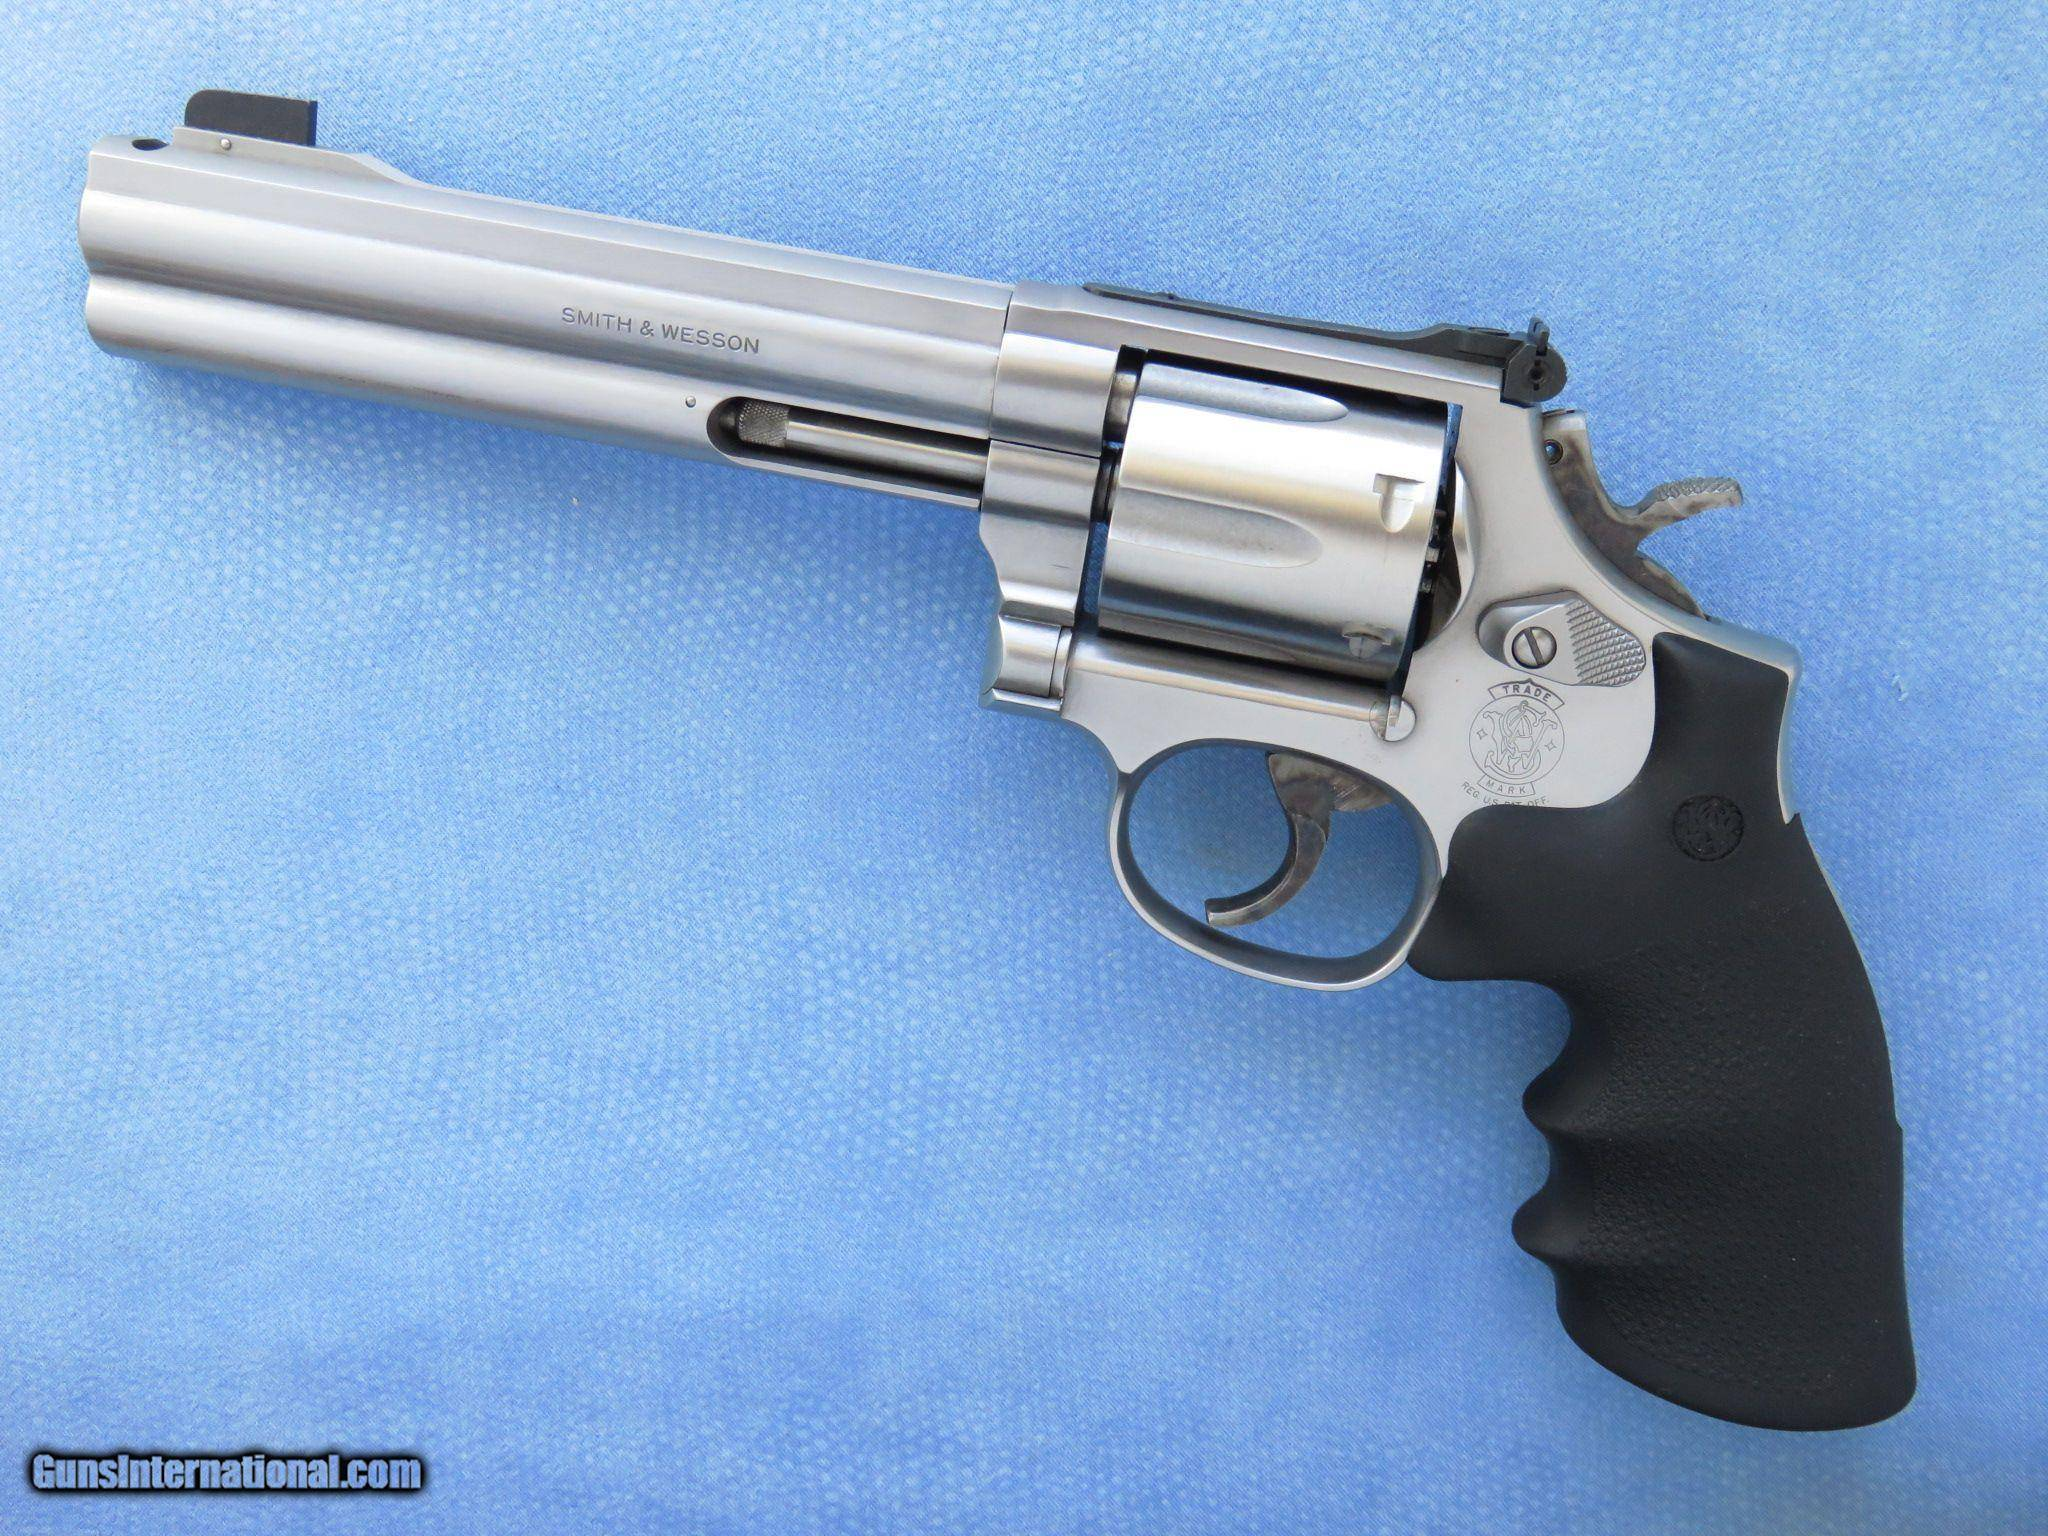 Smith & wesson - smith & wesson - qwe.wiki